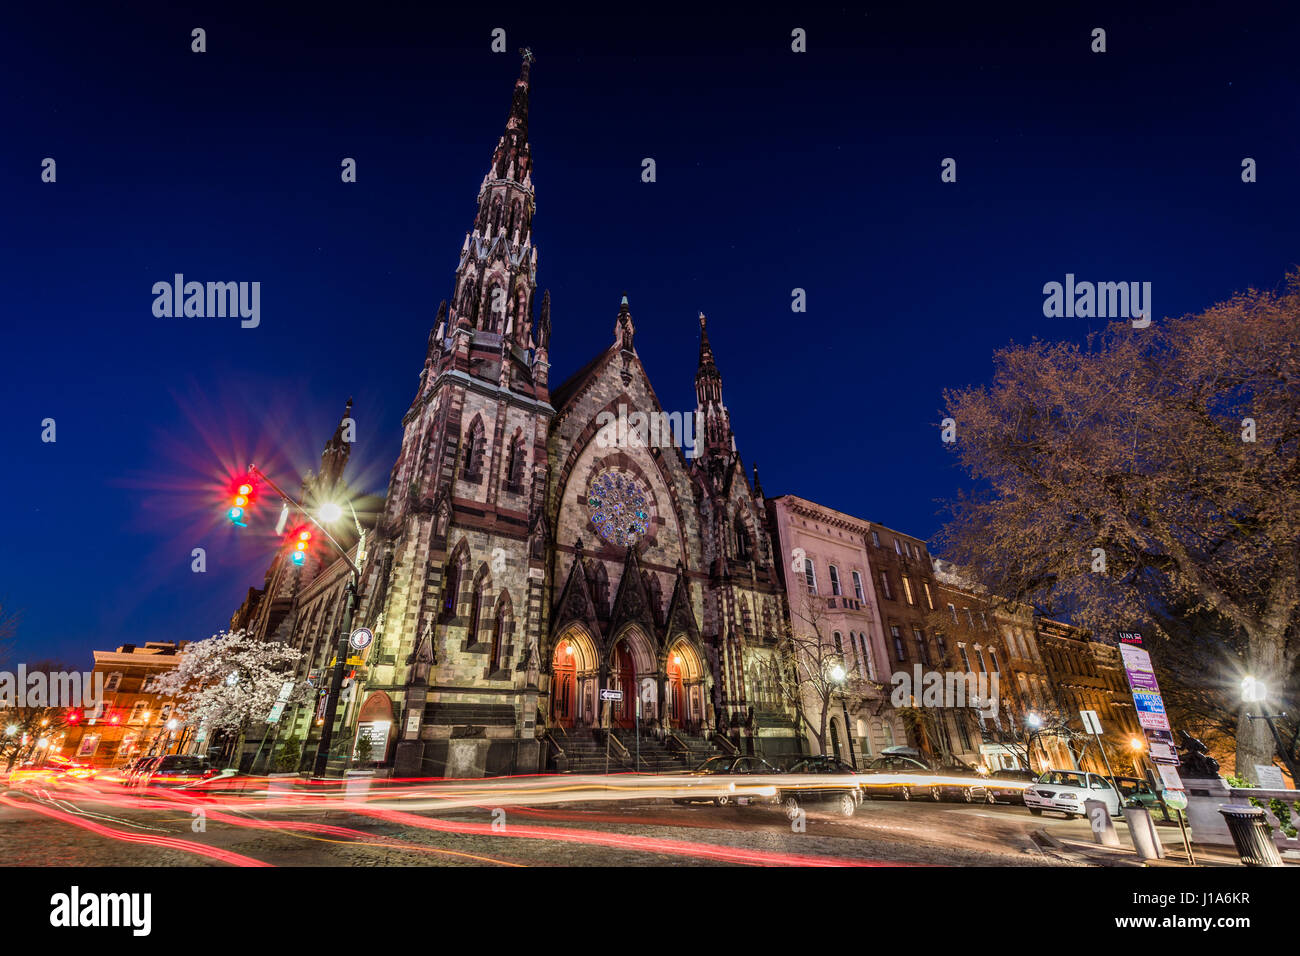 3e52e1ed298 Early learning center church in mount vernon baltimore maryland at night -  Stock Image